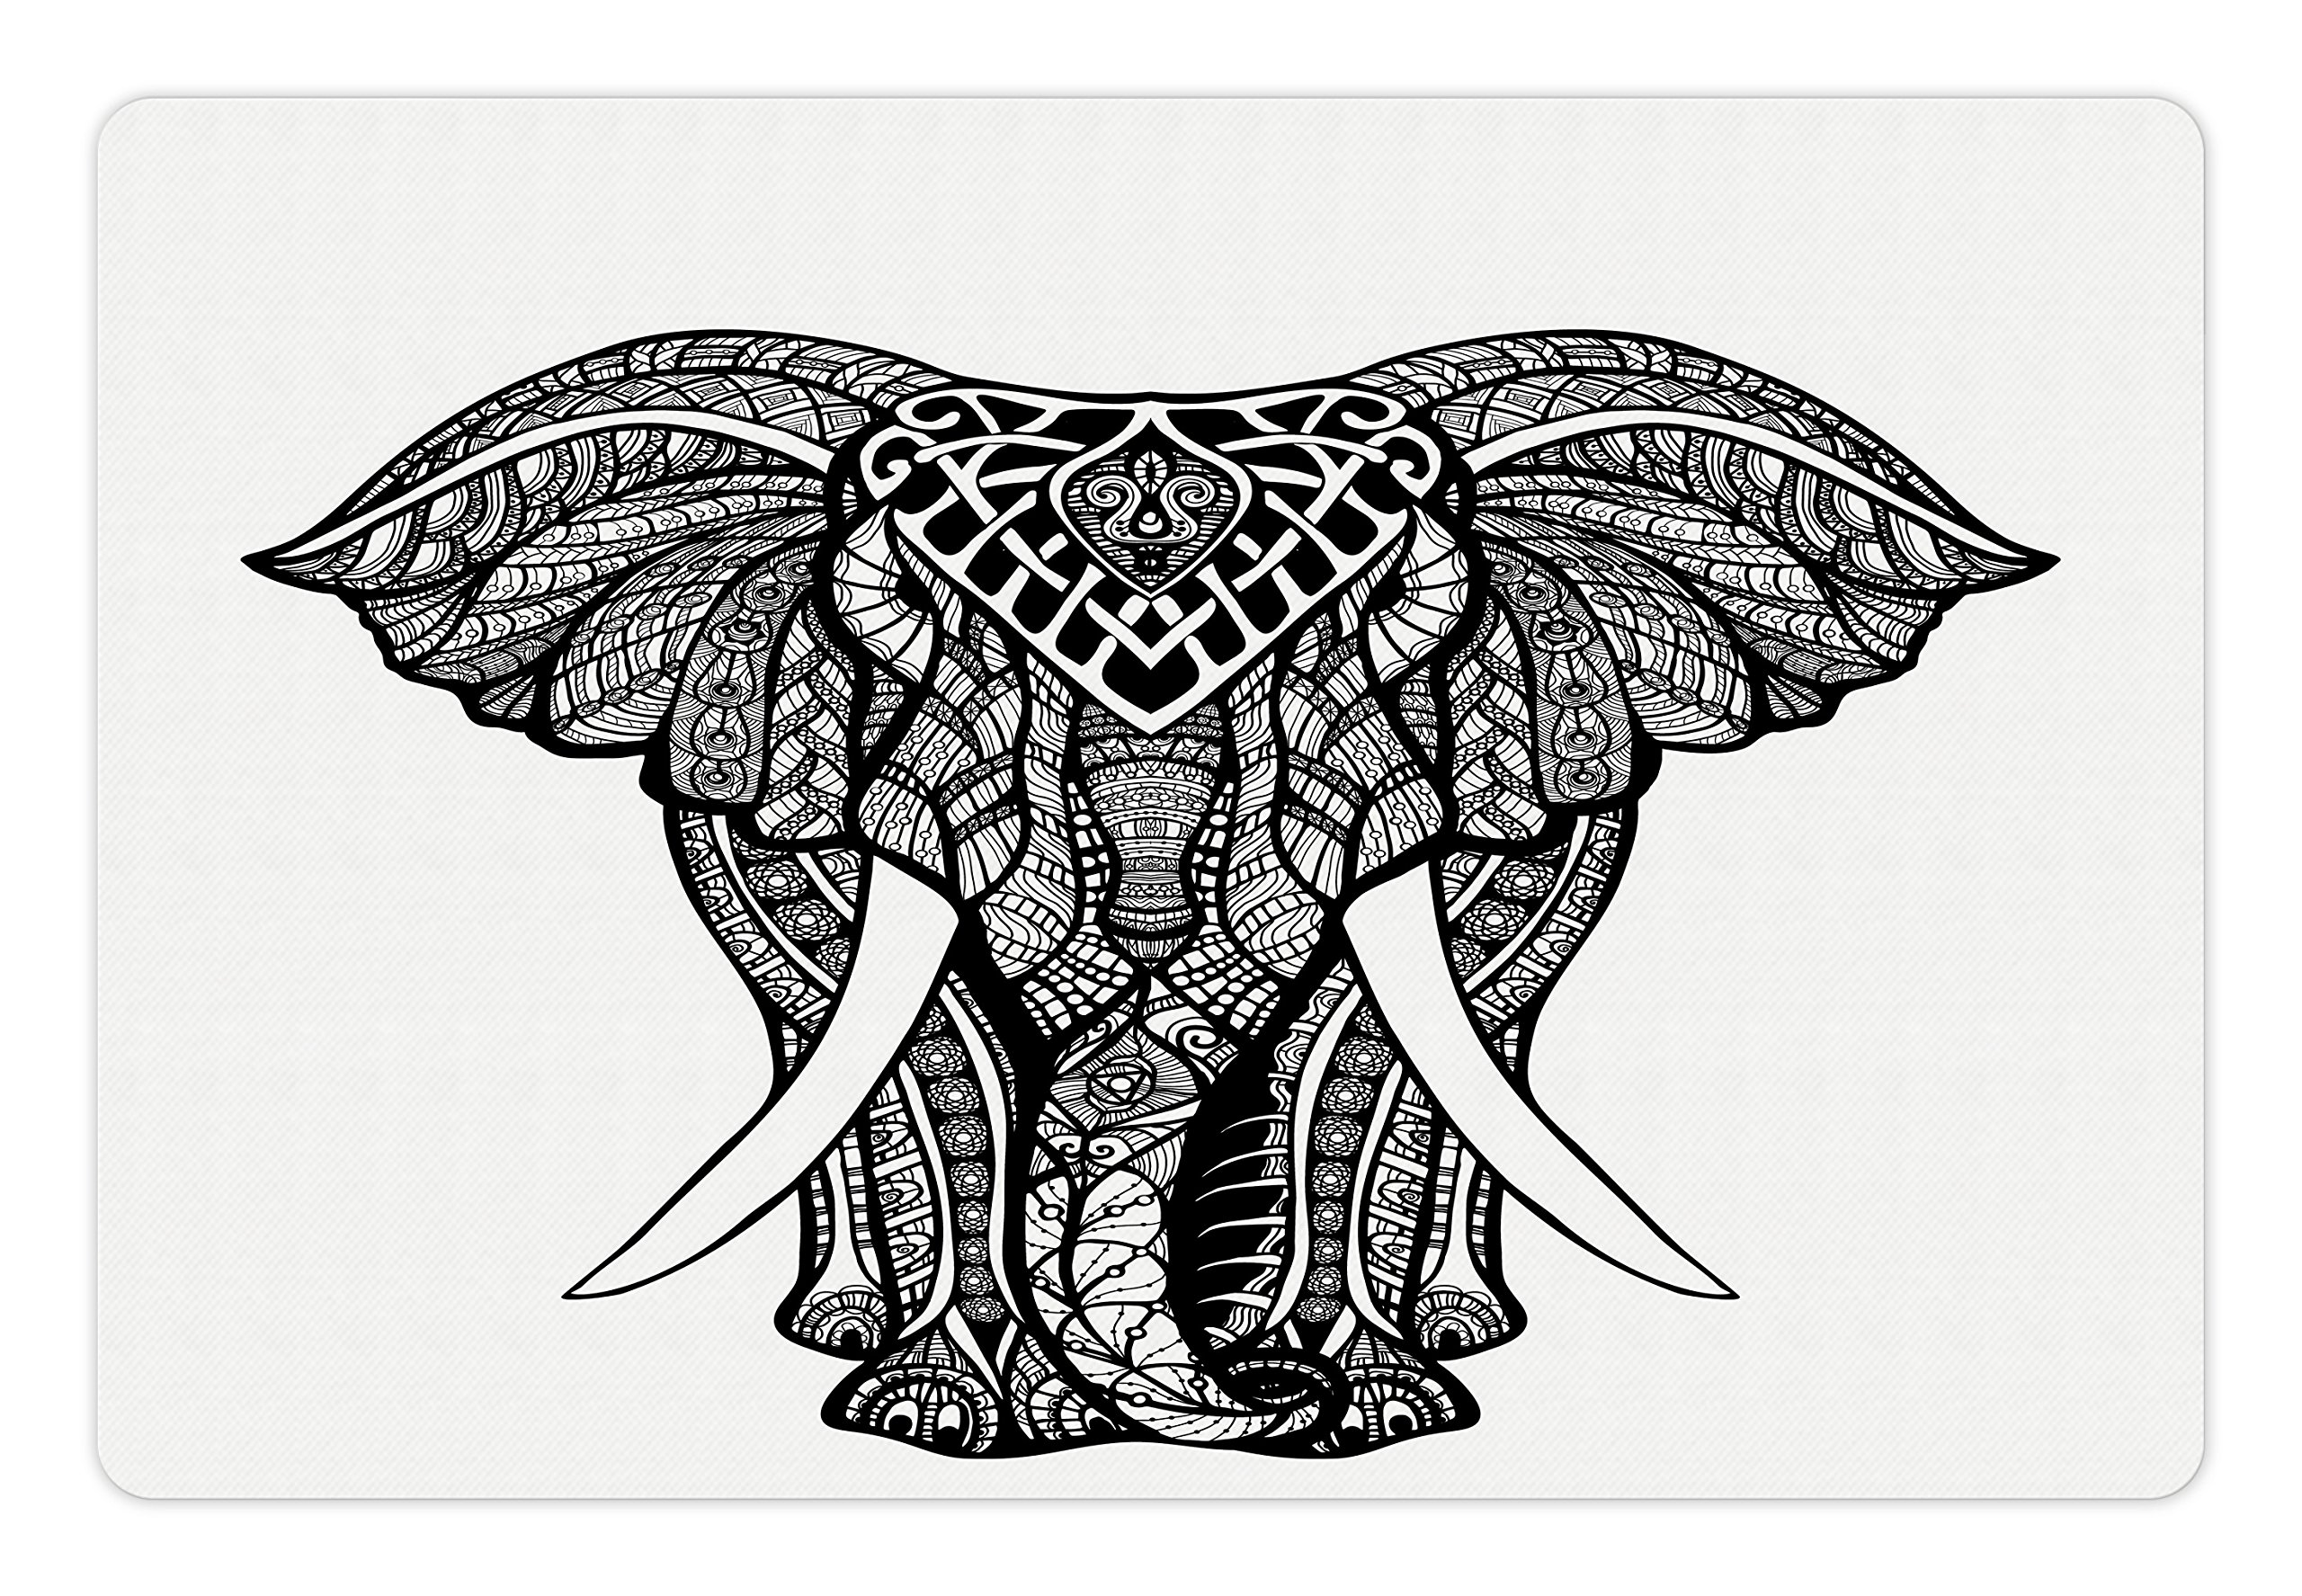 Ambesonne Elephant Mandala Pet Mat for Food and Water, Tribal Mehndi Ethnic Native American Totem Mandala Spirit Animal, Rectangle Non-Slip Rubber Mat for Dogs and Cats, Black and White